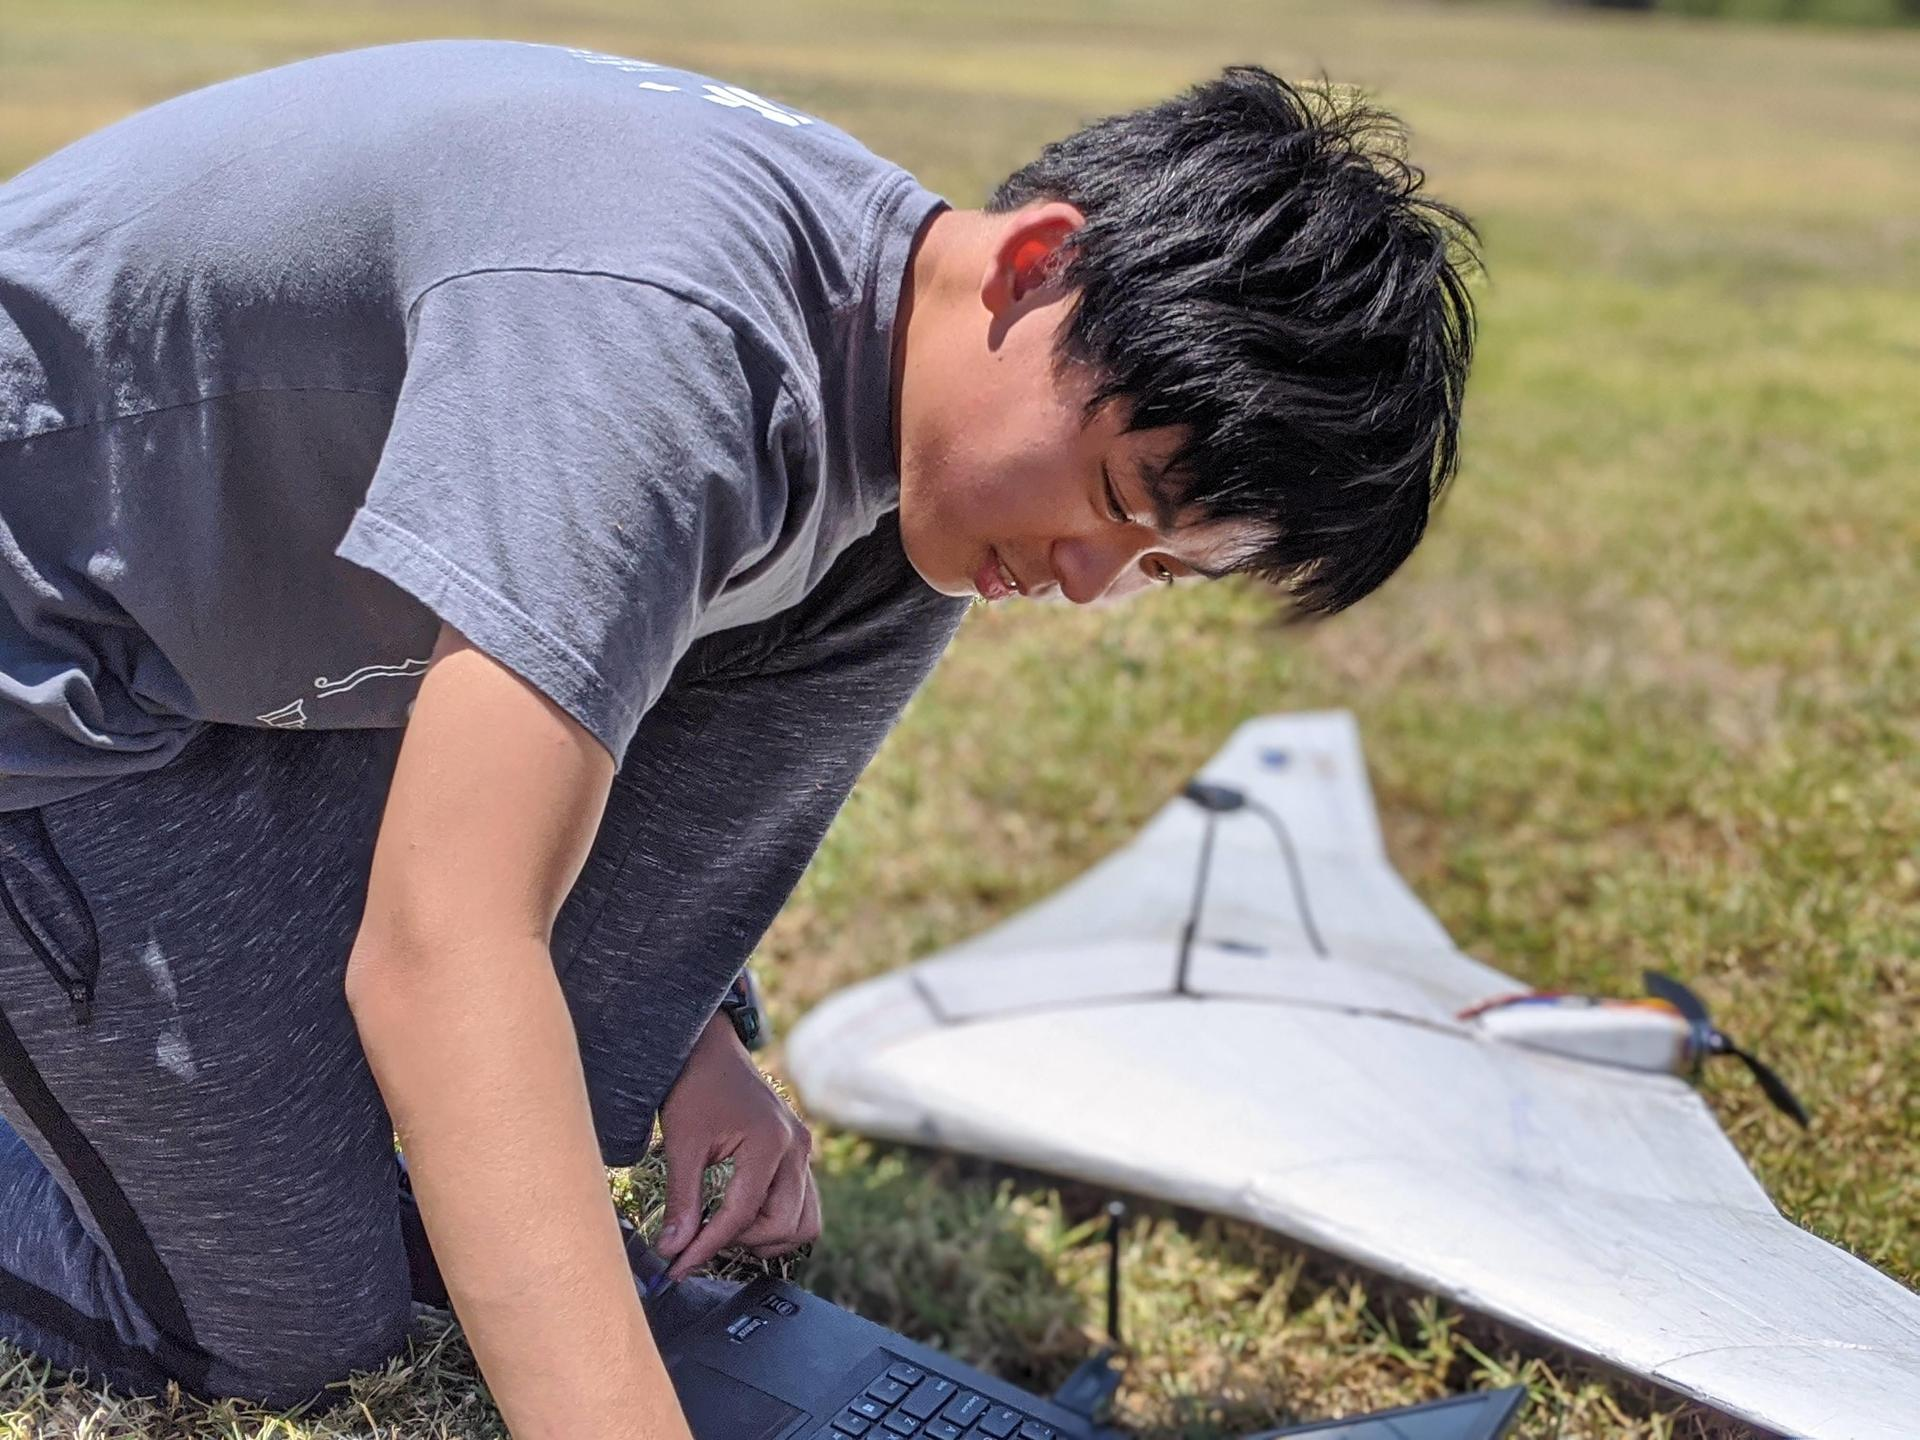 Ethan Wong working on his plane